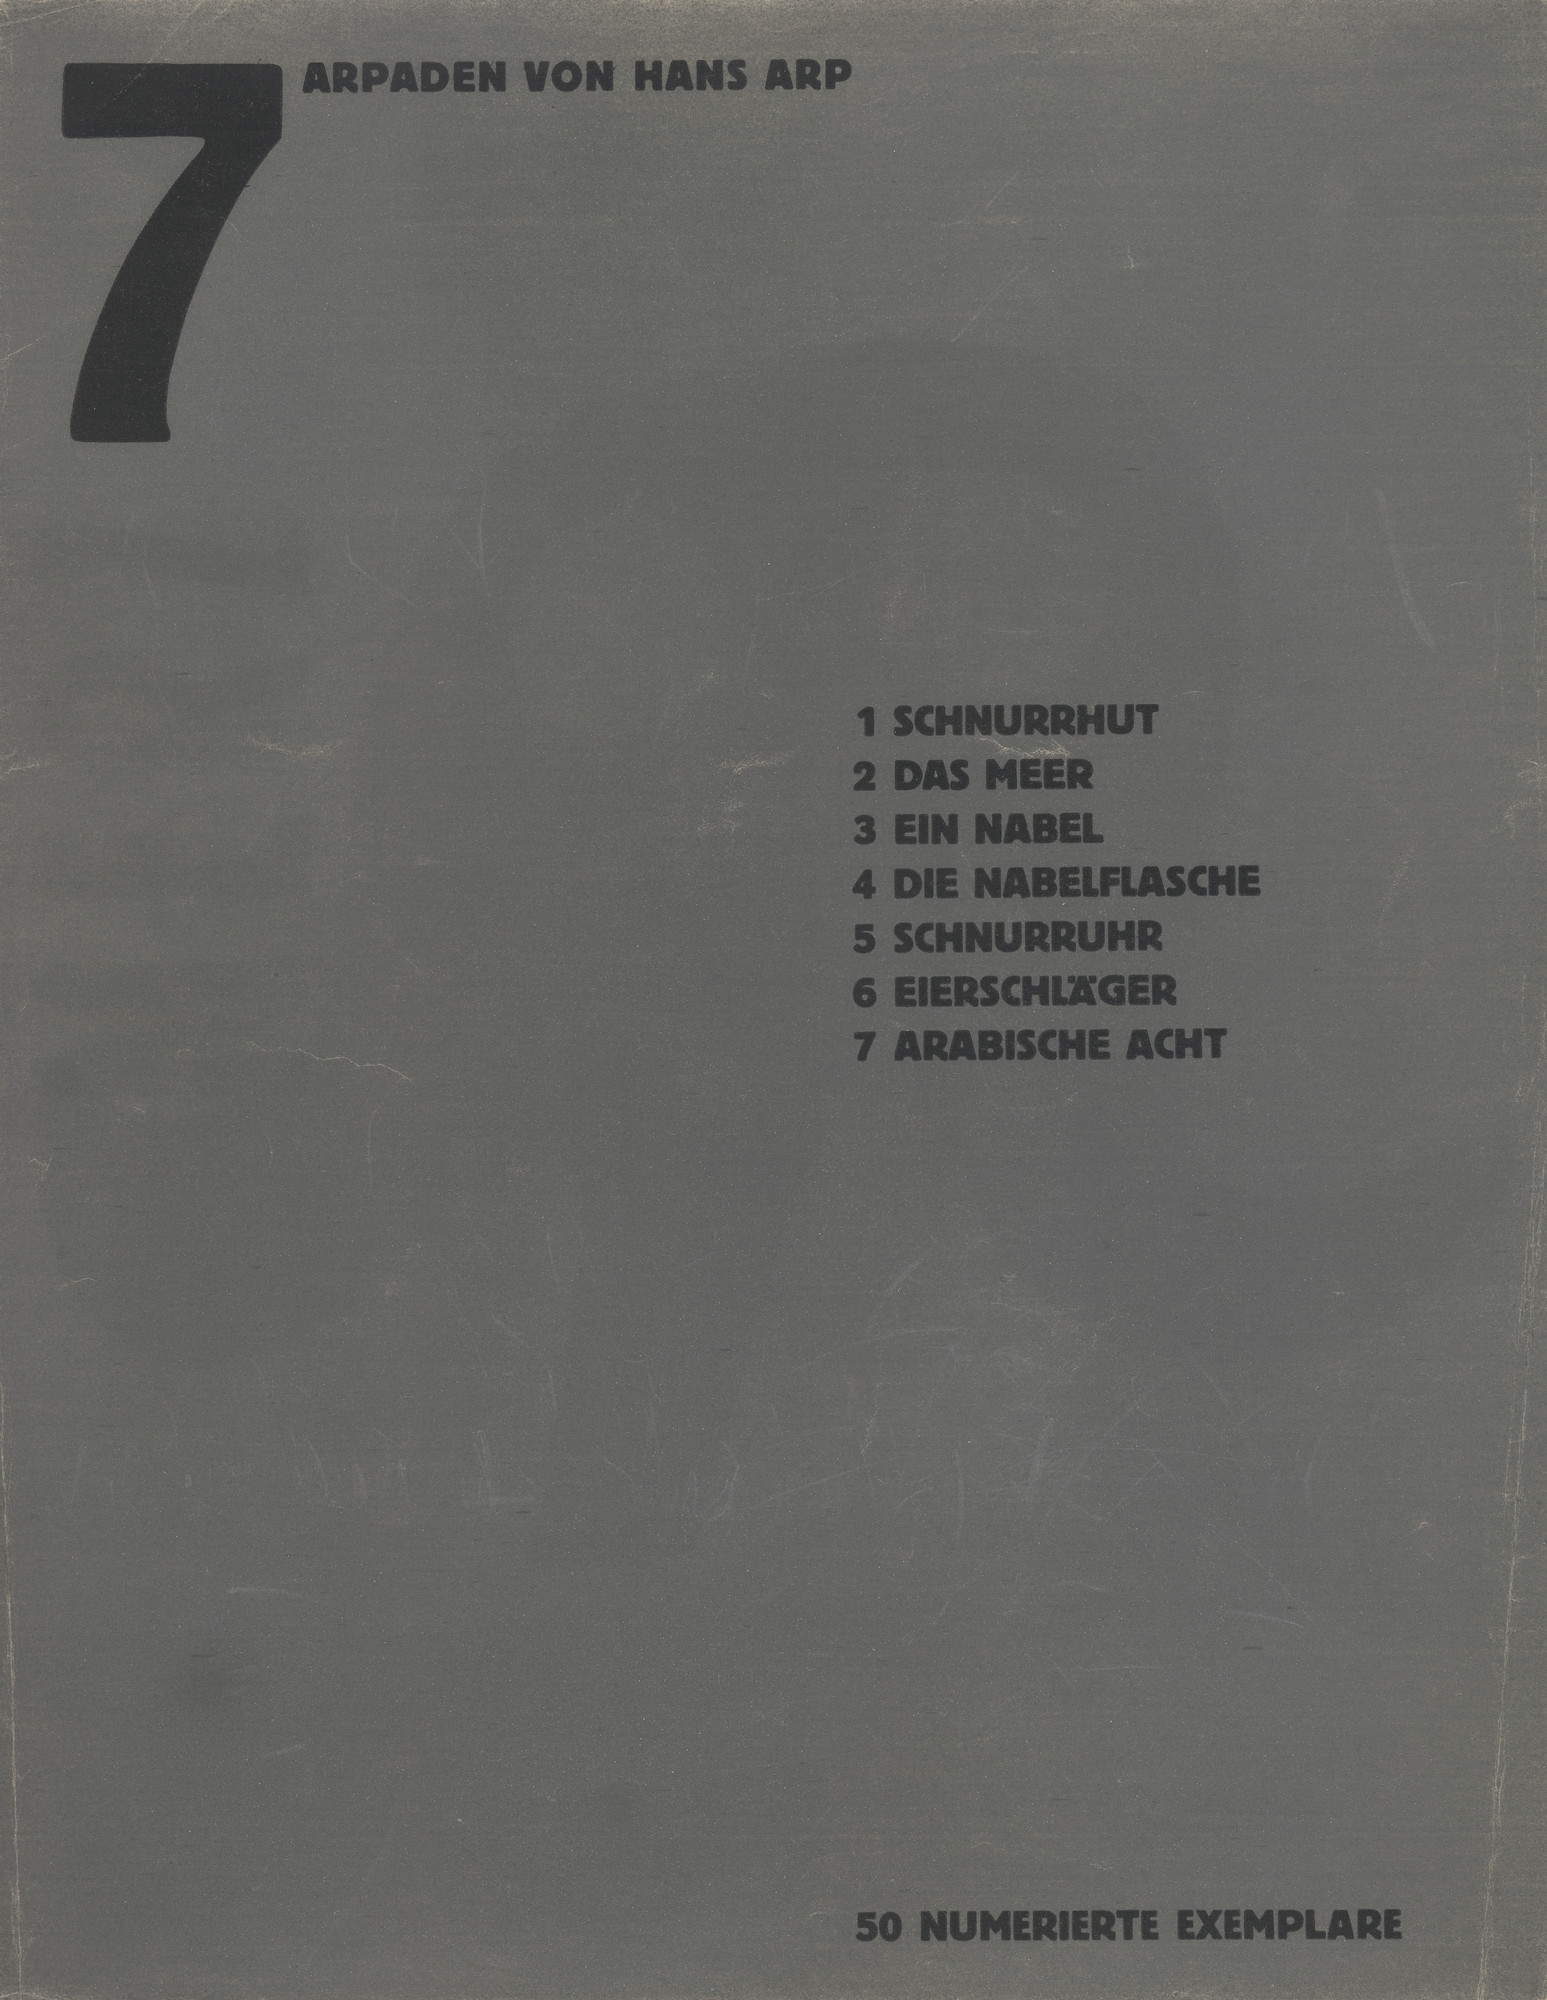 Jean (Hans) Arp. Table of Contents from Merz 5. 7 Arpaden by Hans Arp. Arp Portfolio. Second Portfolio of the Merz Publisher (Merz 5. 7 Arpaden von Hans Arp. Arp Mappe. Zweite Mappe des Merzverlages). 1923